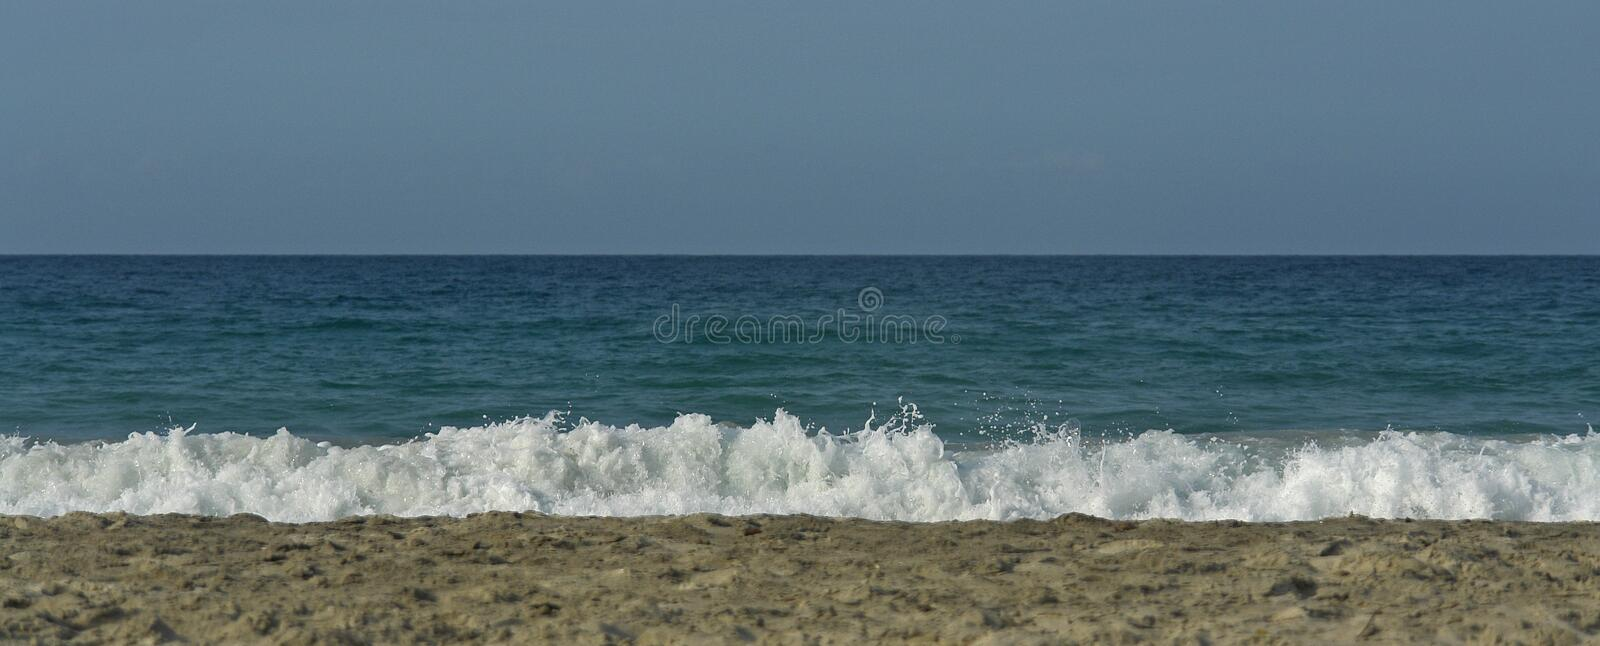 Beach with waves stock photo